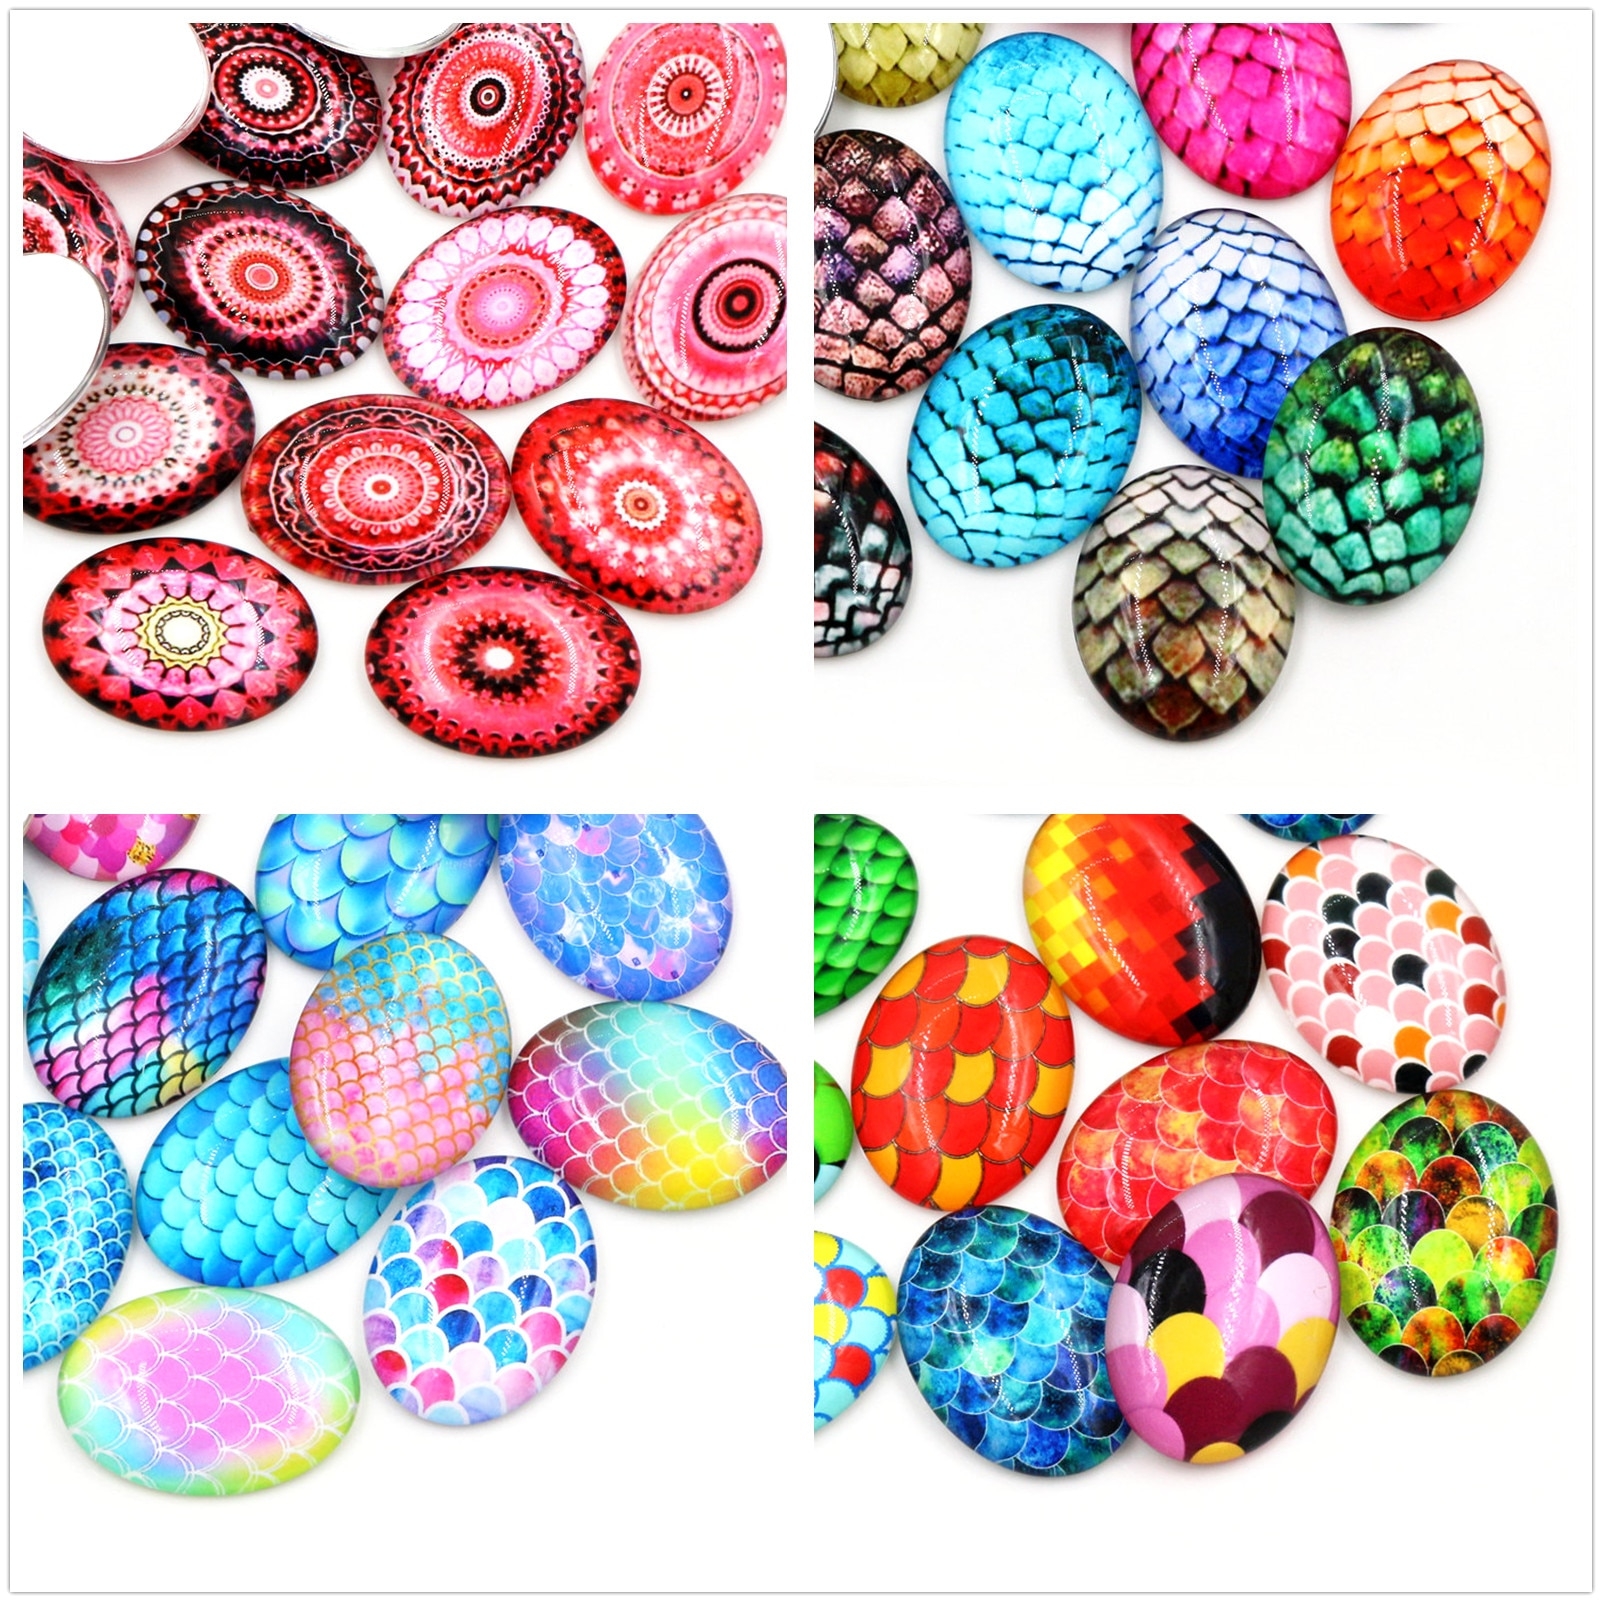 18x25mm 30x40mm New Fashion Color Classic Handmade Photo Glass Cabochons Pattern Domed Jewelry Accessories Supplies 2020 hot sale new fashion 5pcs lot 25mm handmade photo glass cabochons